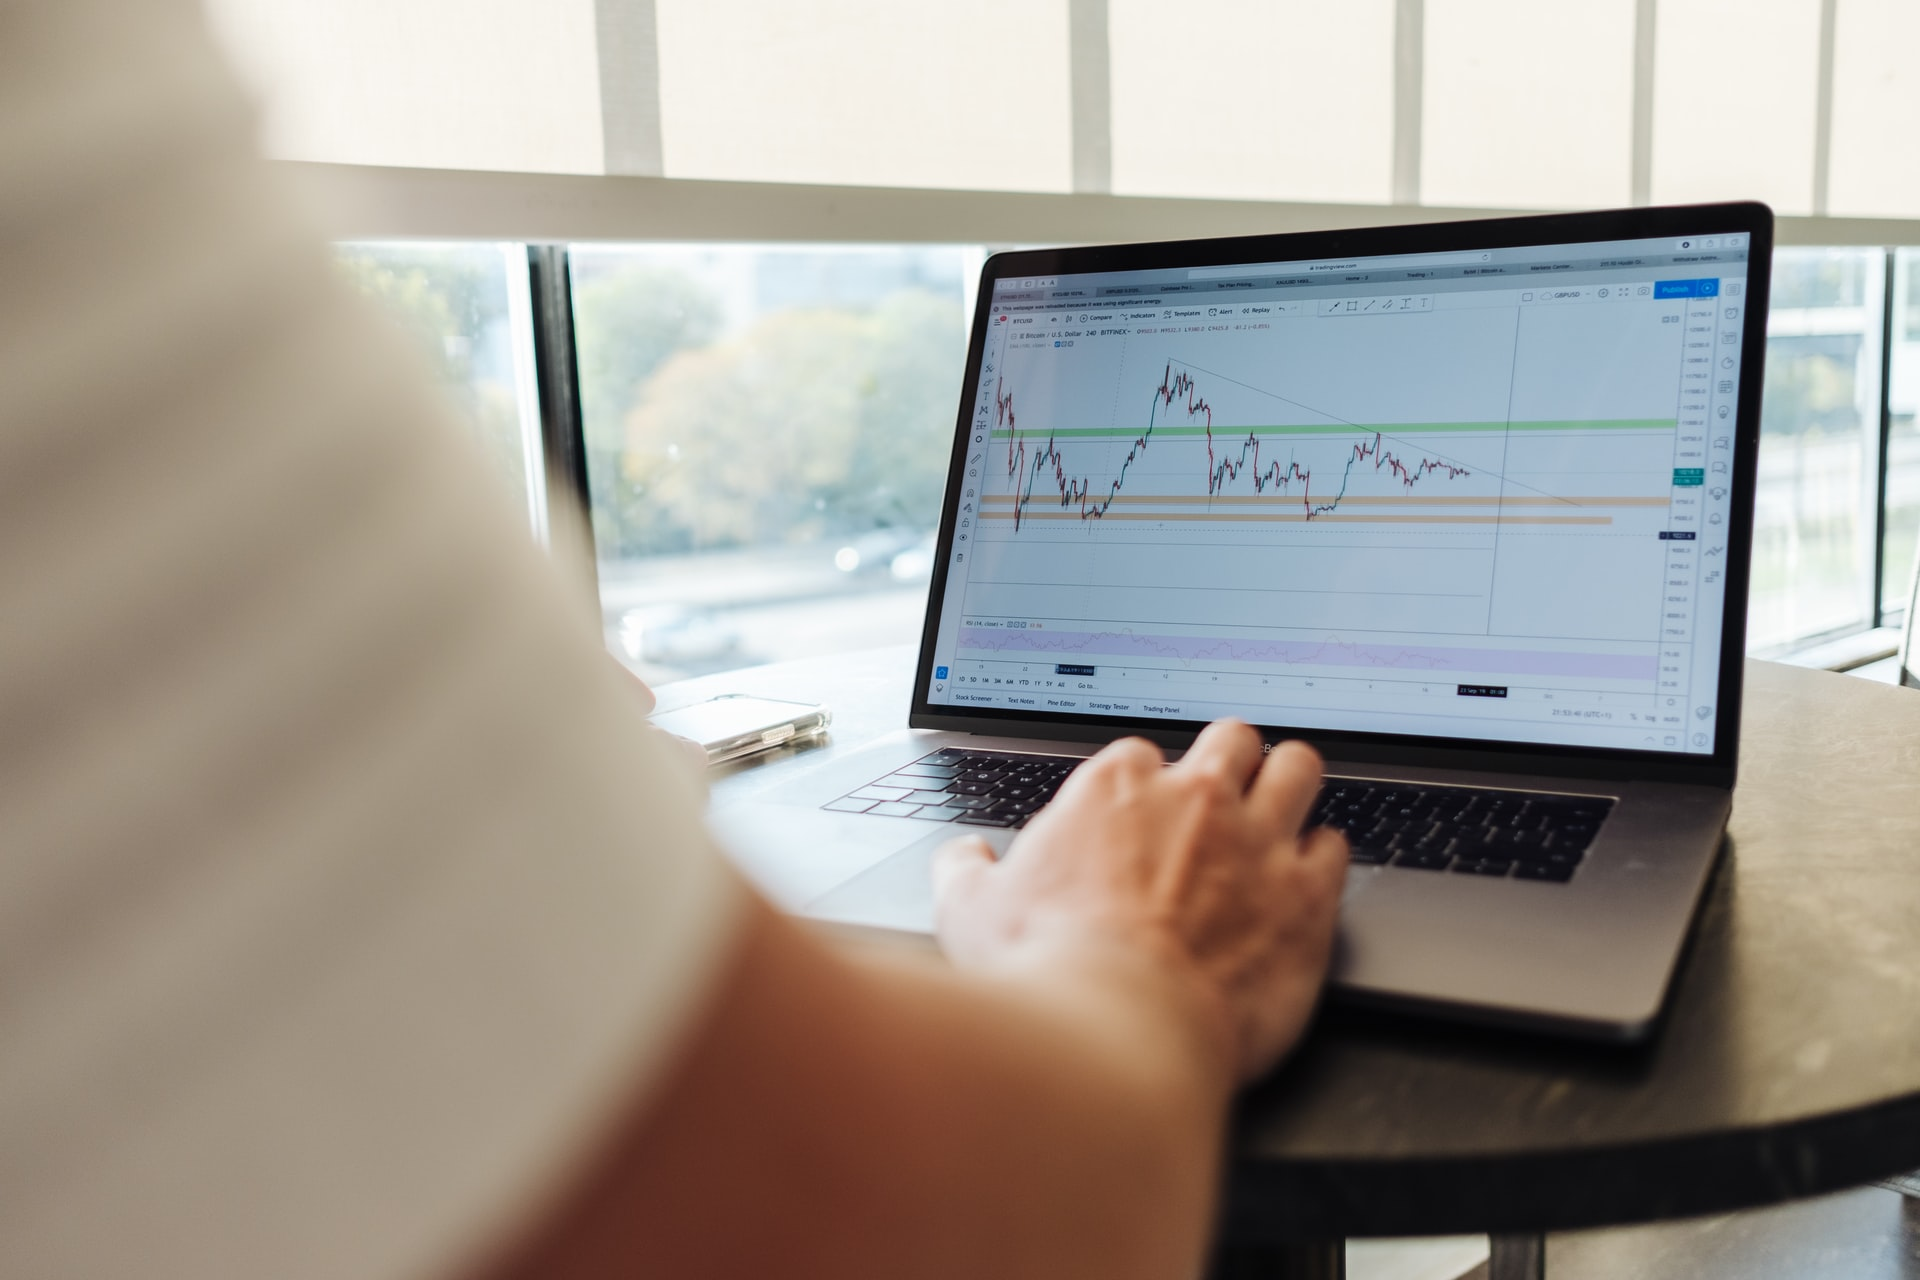 Are You A Beginner At Trading? Here's How To Find The Right Software